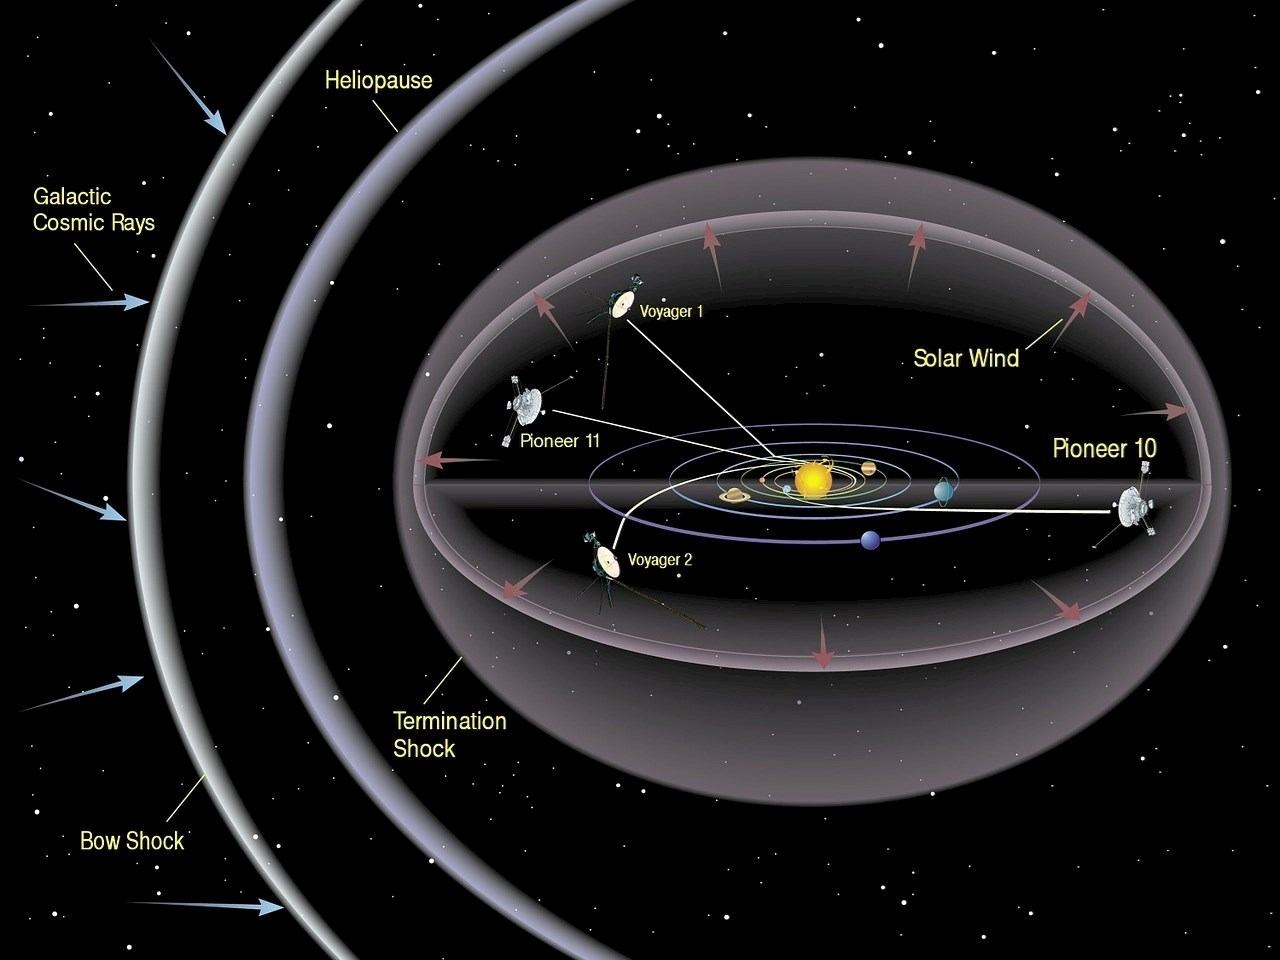 Illustration of Voyager 1 in space